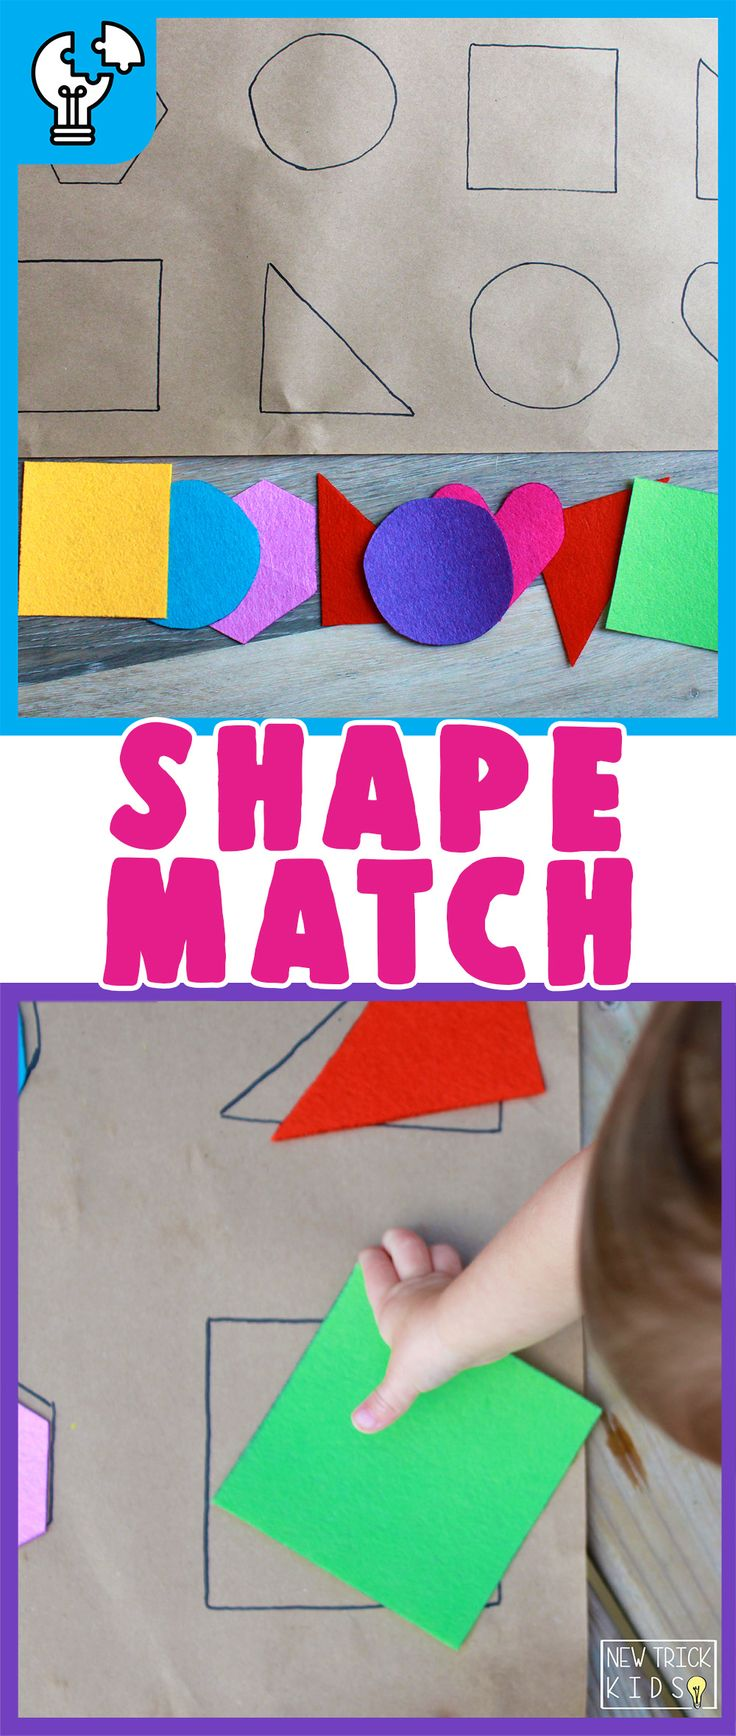 Shape Match- A quick and cheap DIY puzzle activity to promote problem solving and visual scanning! Designed for toddlers and preschoolers. Ages: [12M …